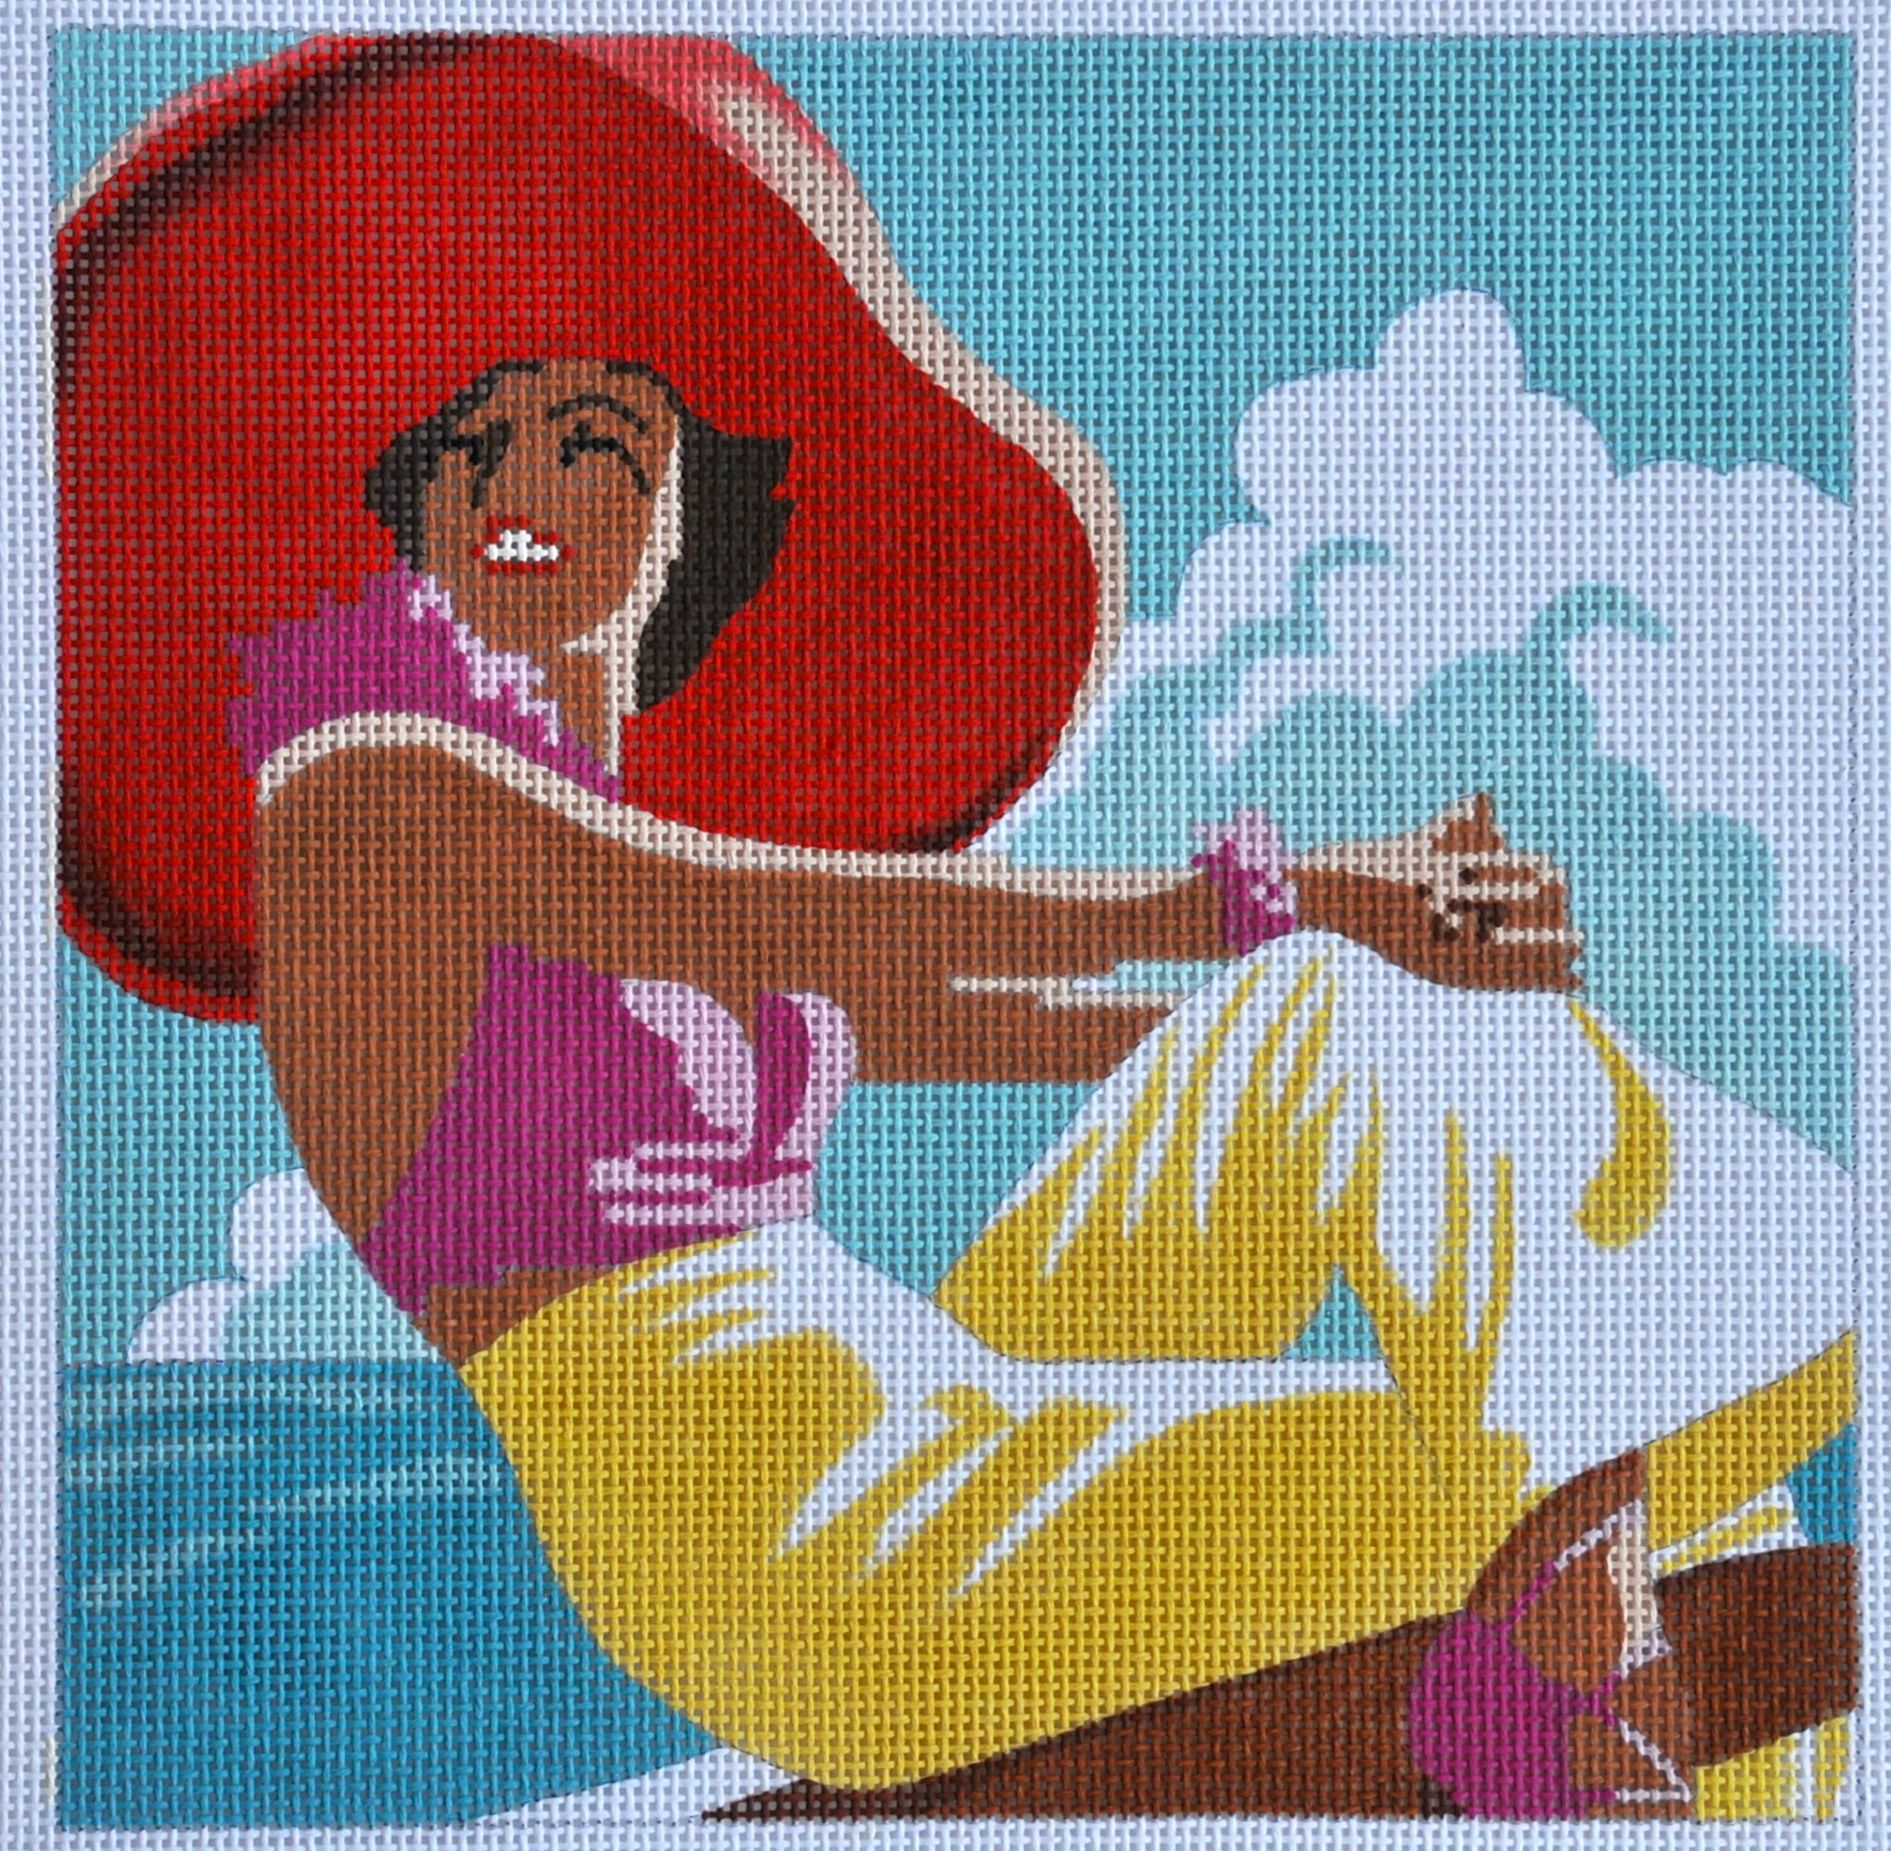 Lady in Red Hat 9x9 13m   Reg. $67.50, Trunk Show $54